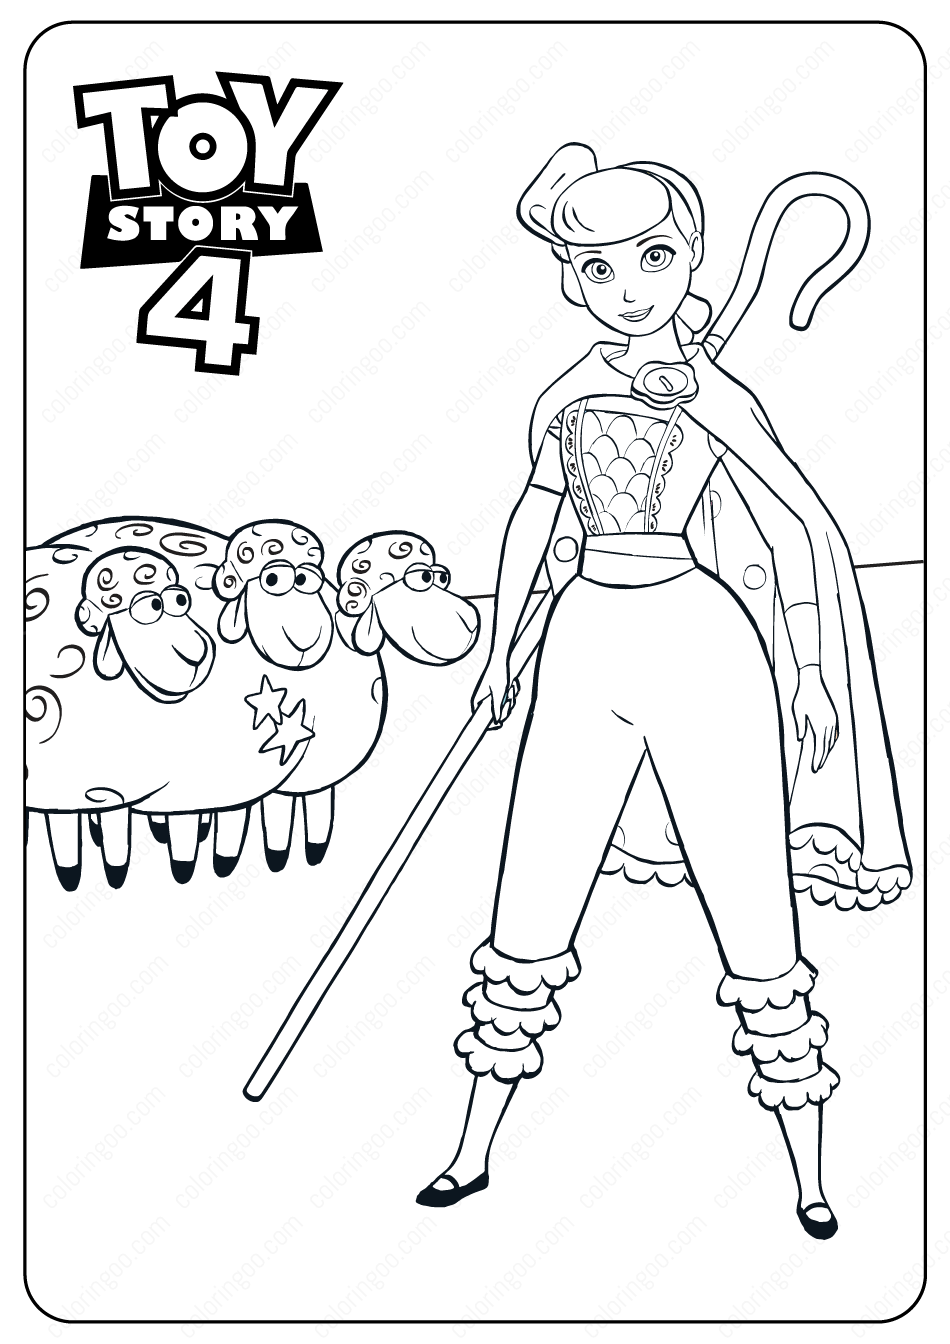 Free Printable Toy Story 4 Bo Peep PDF Coloring Pages in